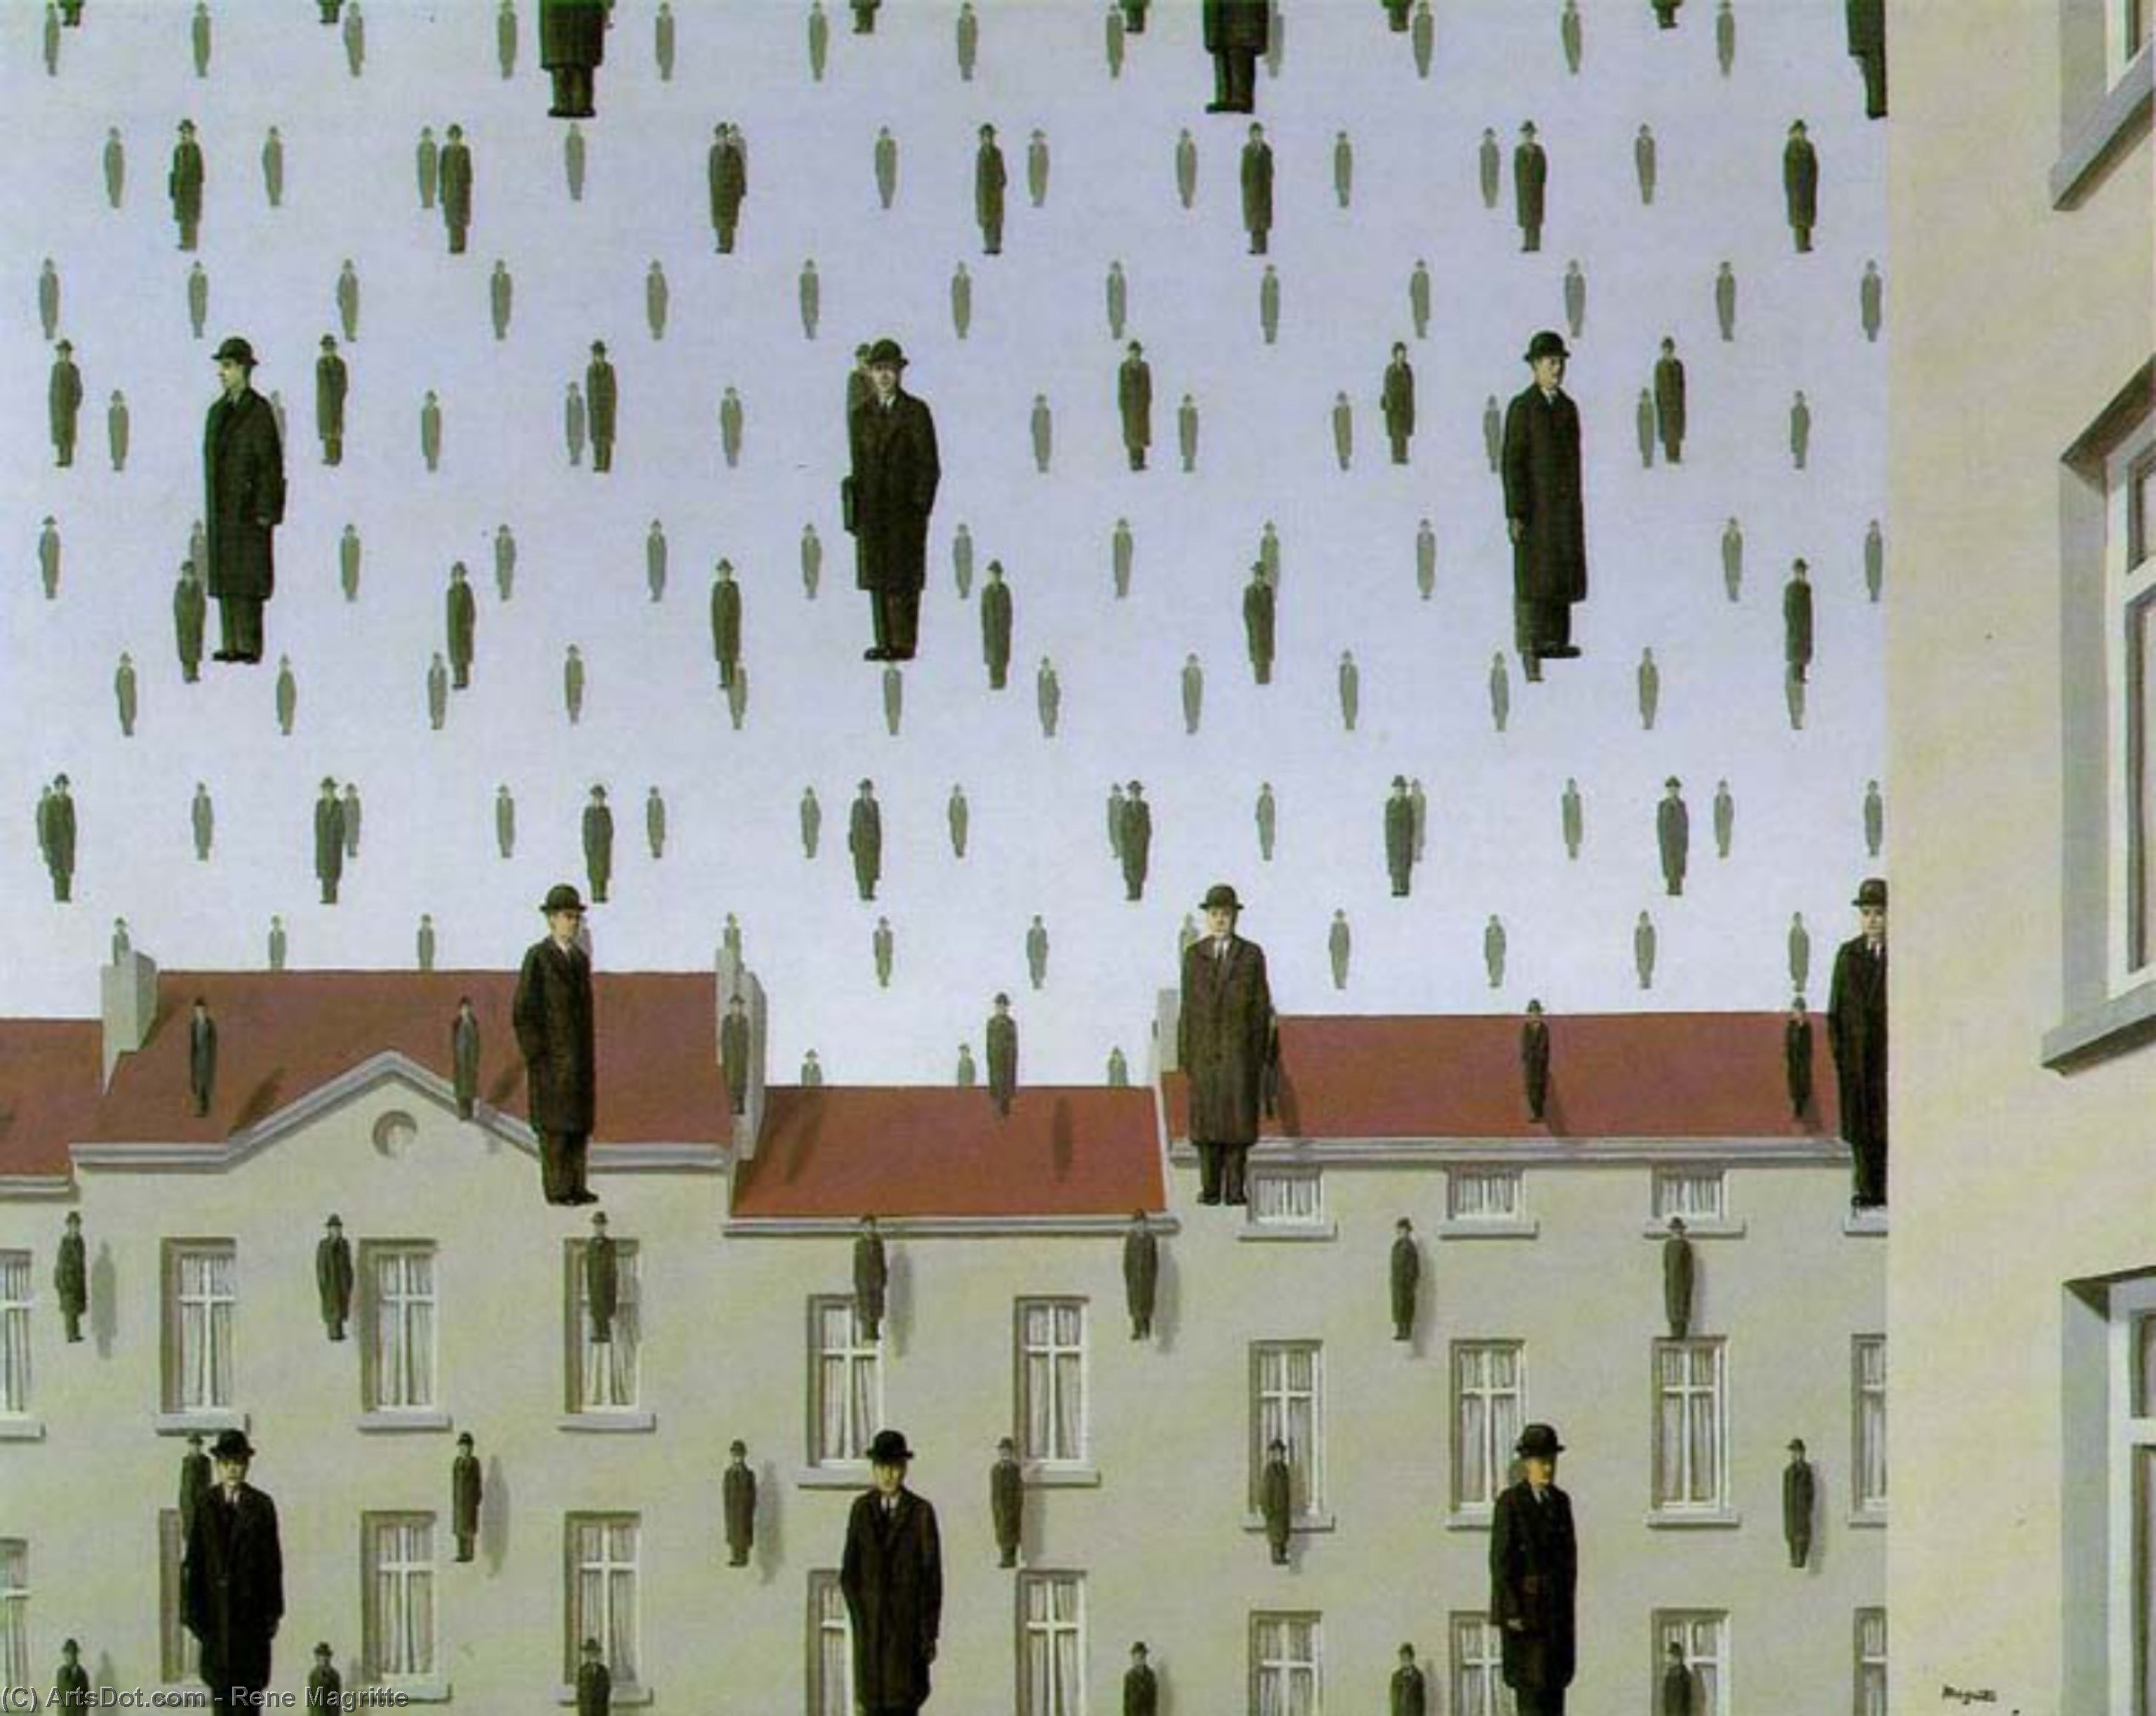 Golconde the menil collection, houston, texas, 1953 by Rene Magritte (1898-1967, Belgium)